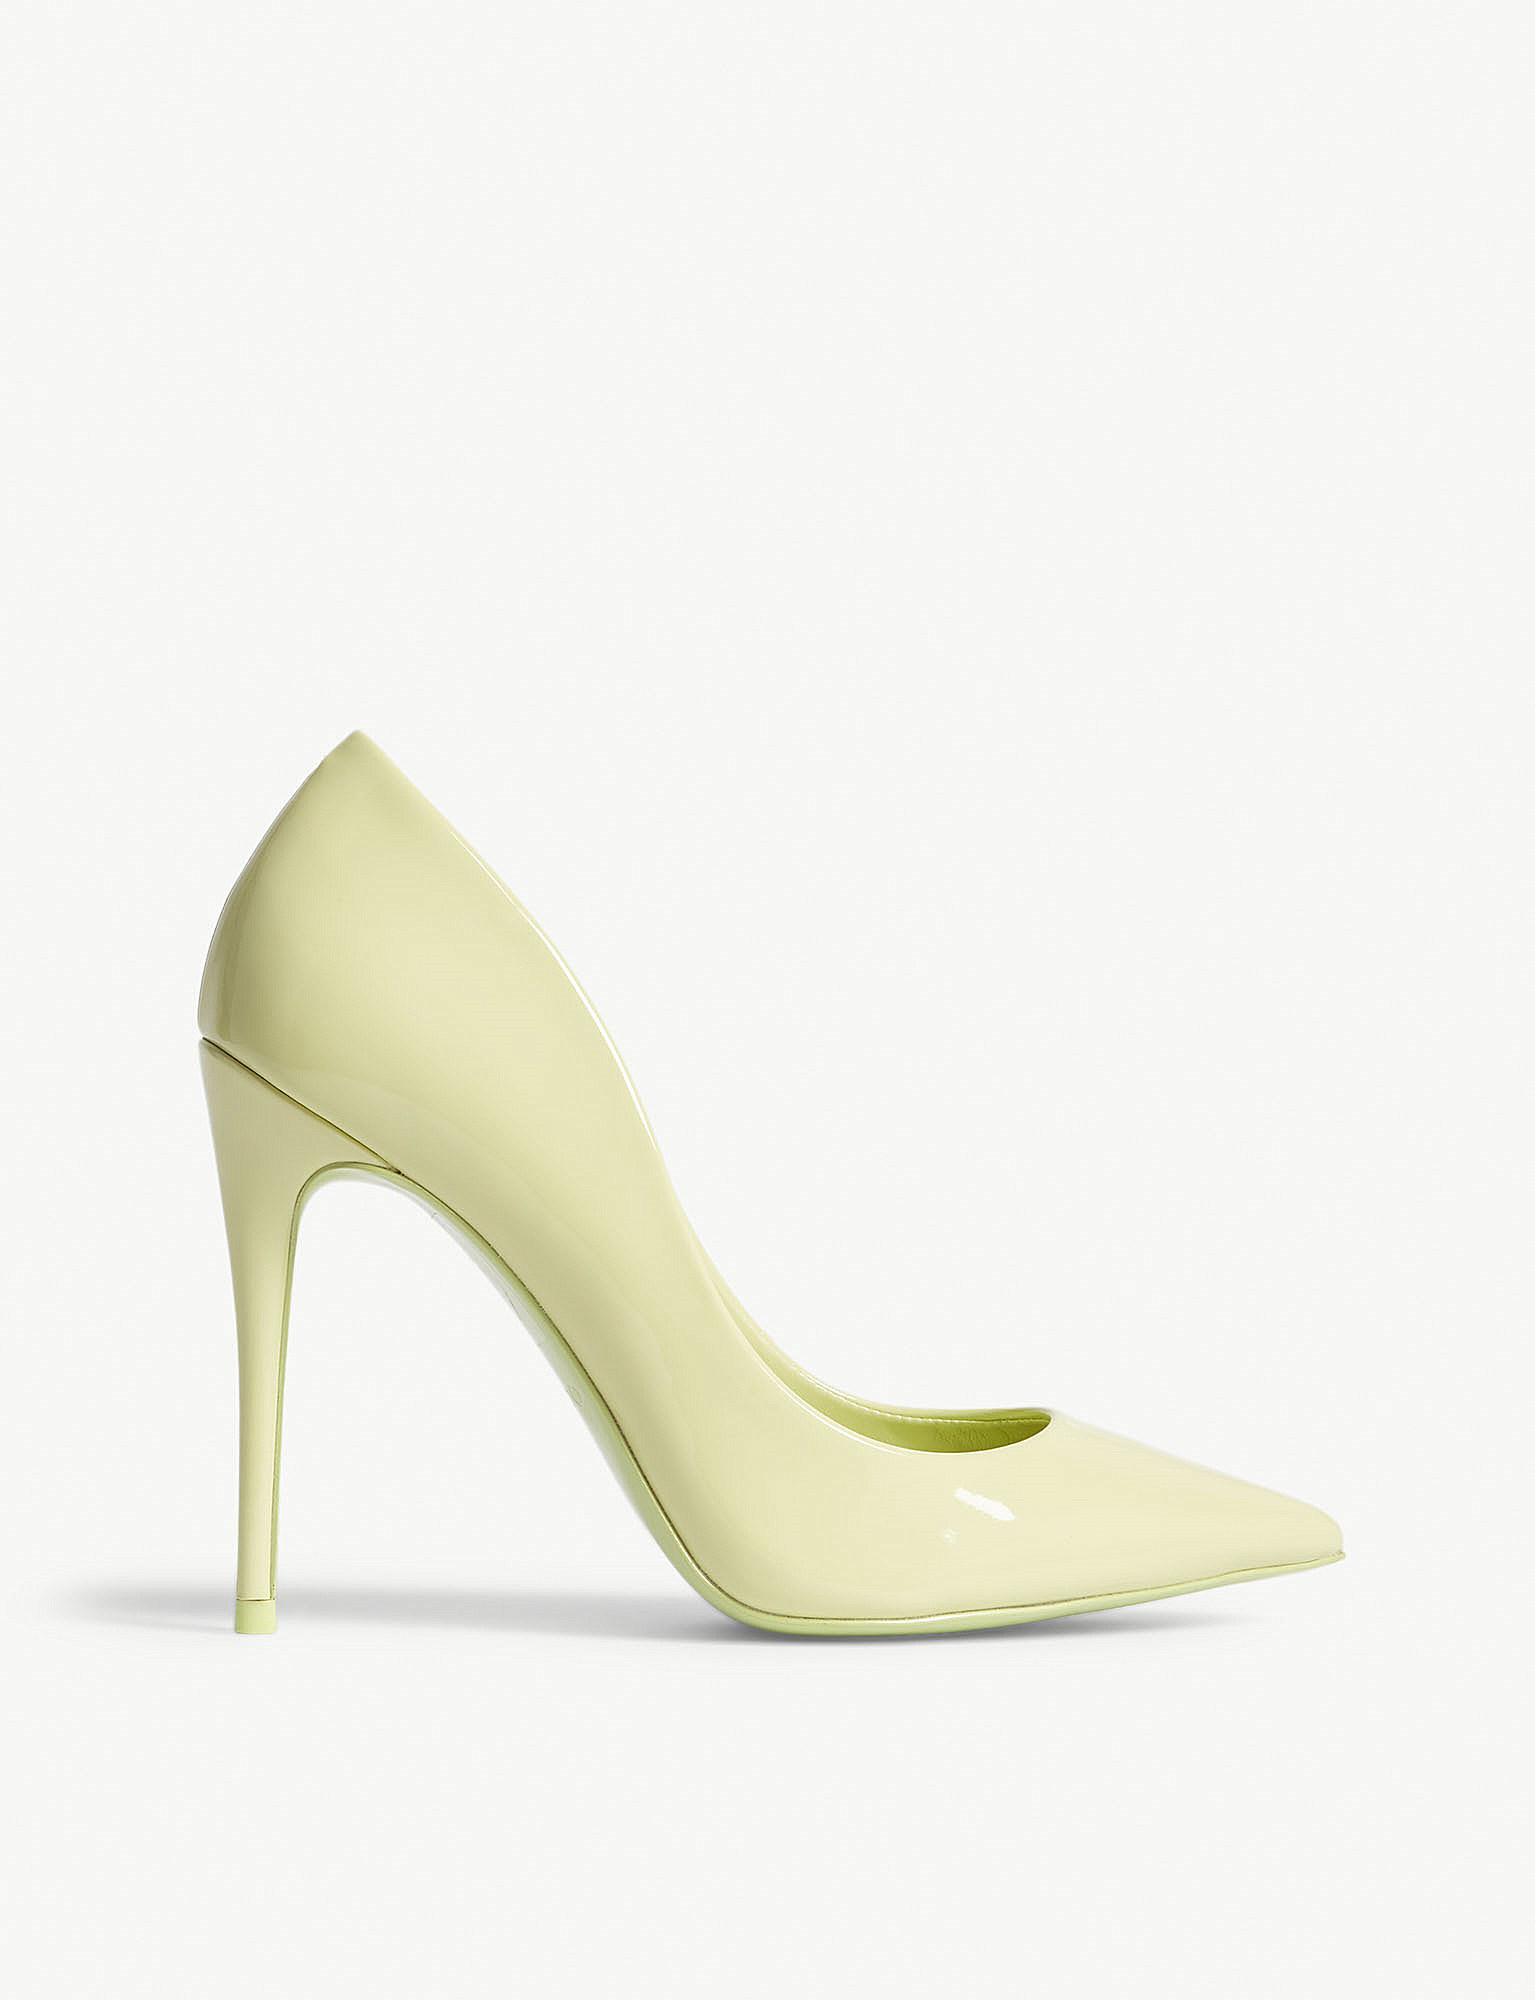 075d689d6772 Aldo Stessy Patent Courts in Green - Lyst